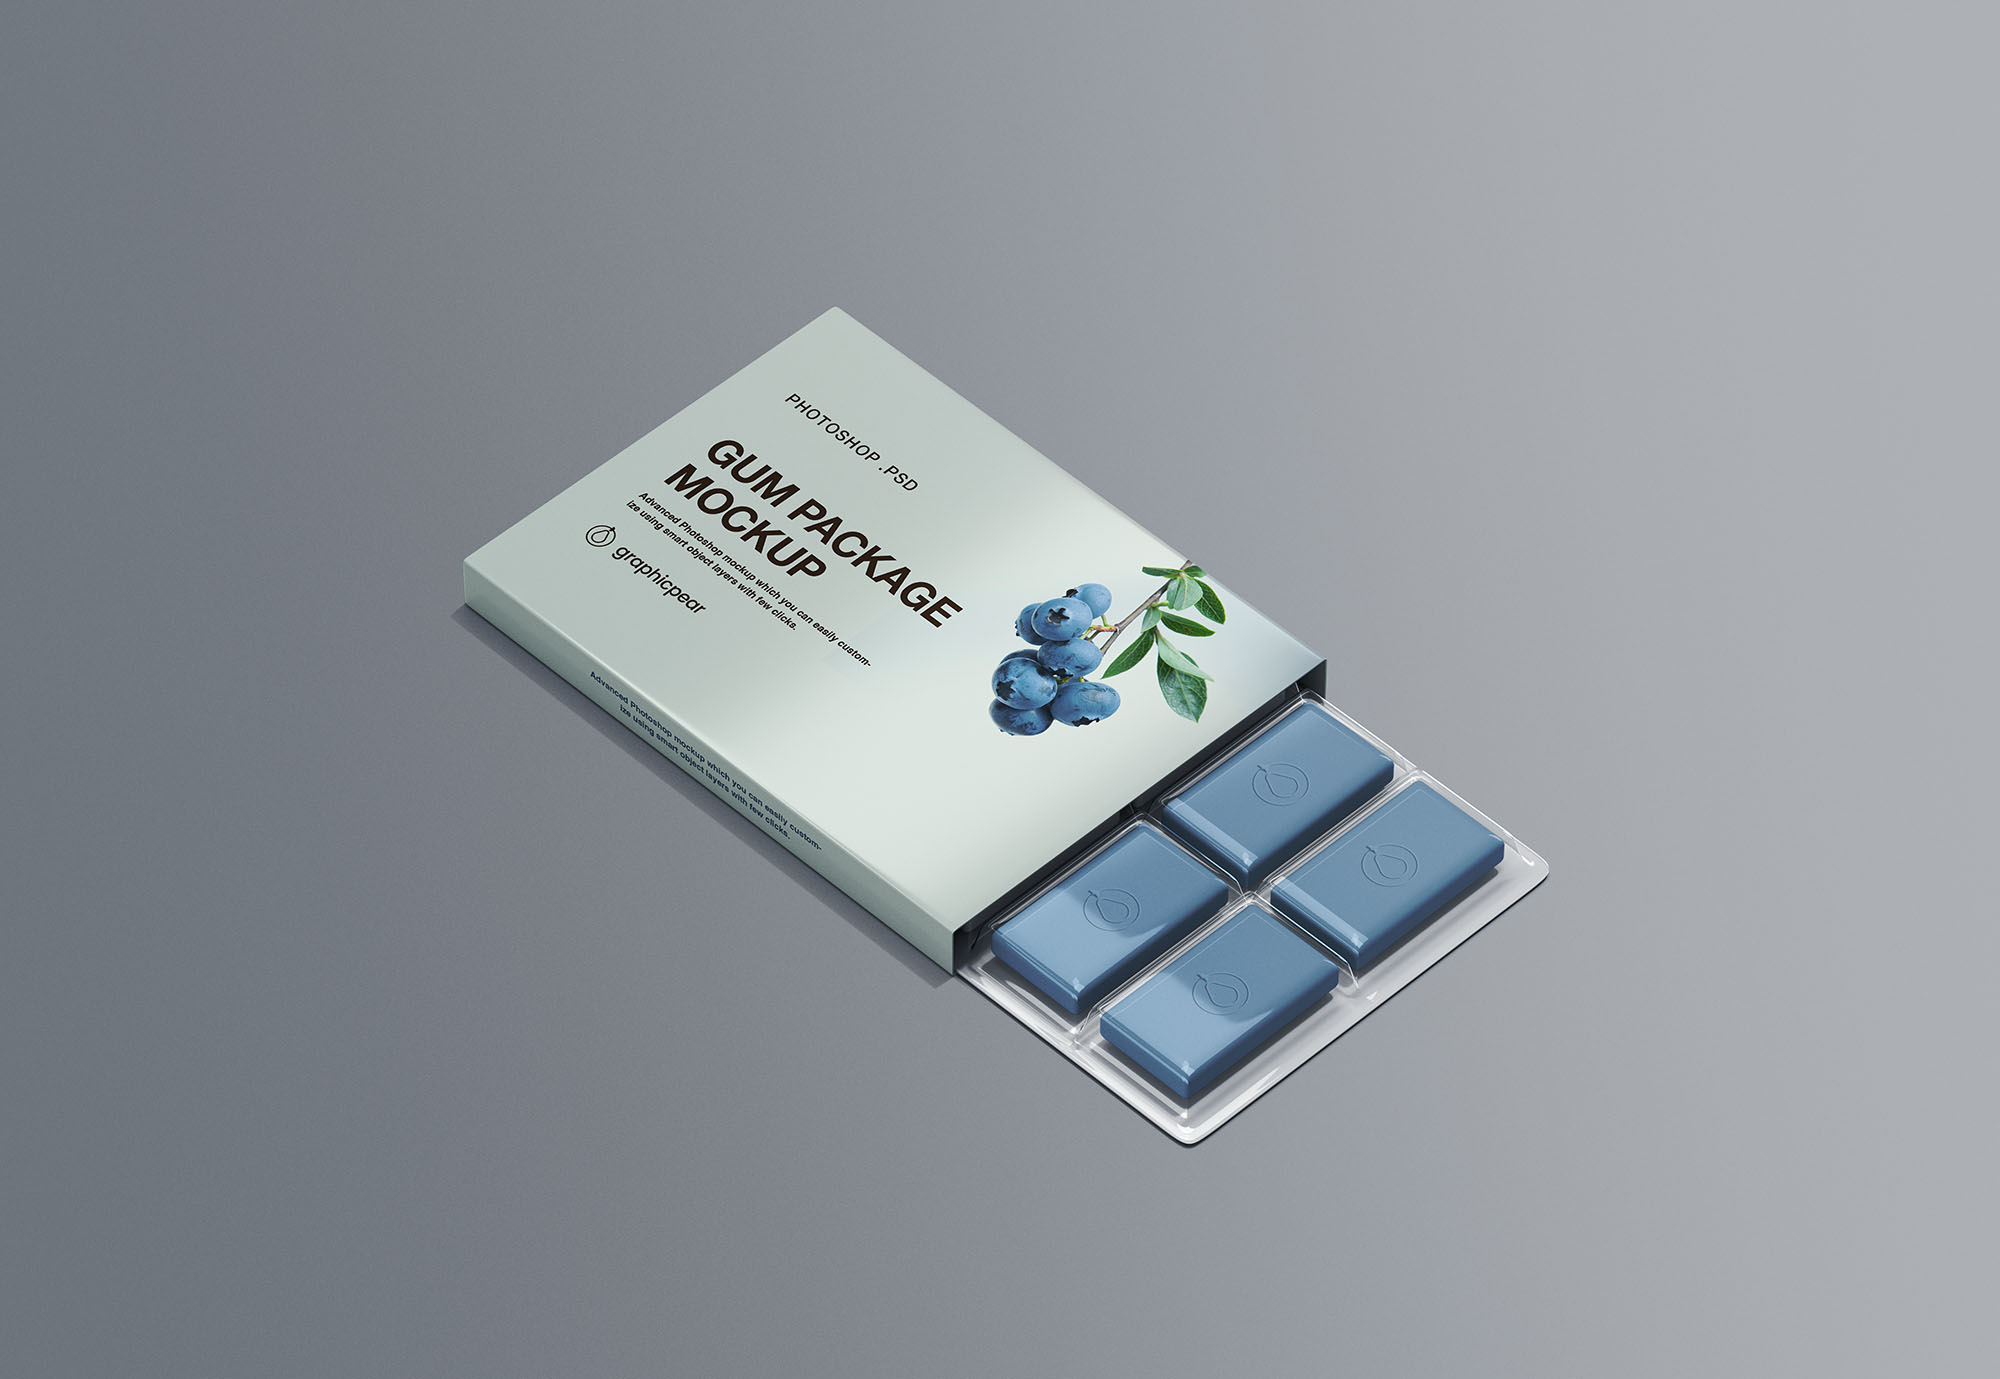 Free Chewing Gum Packaging Mockup